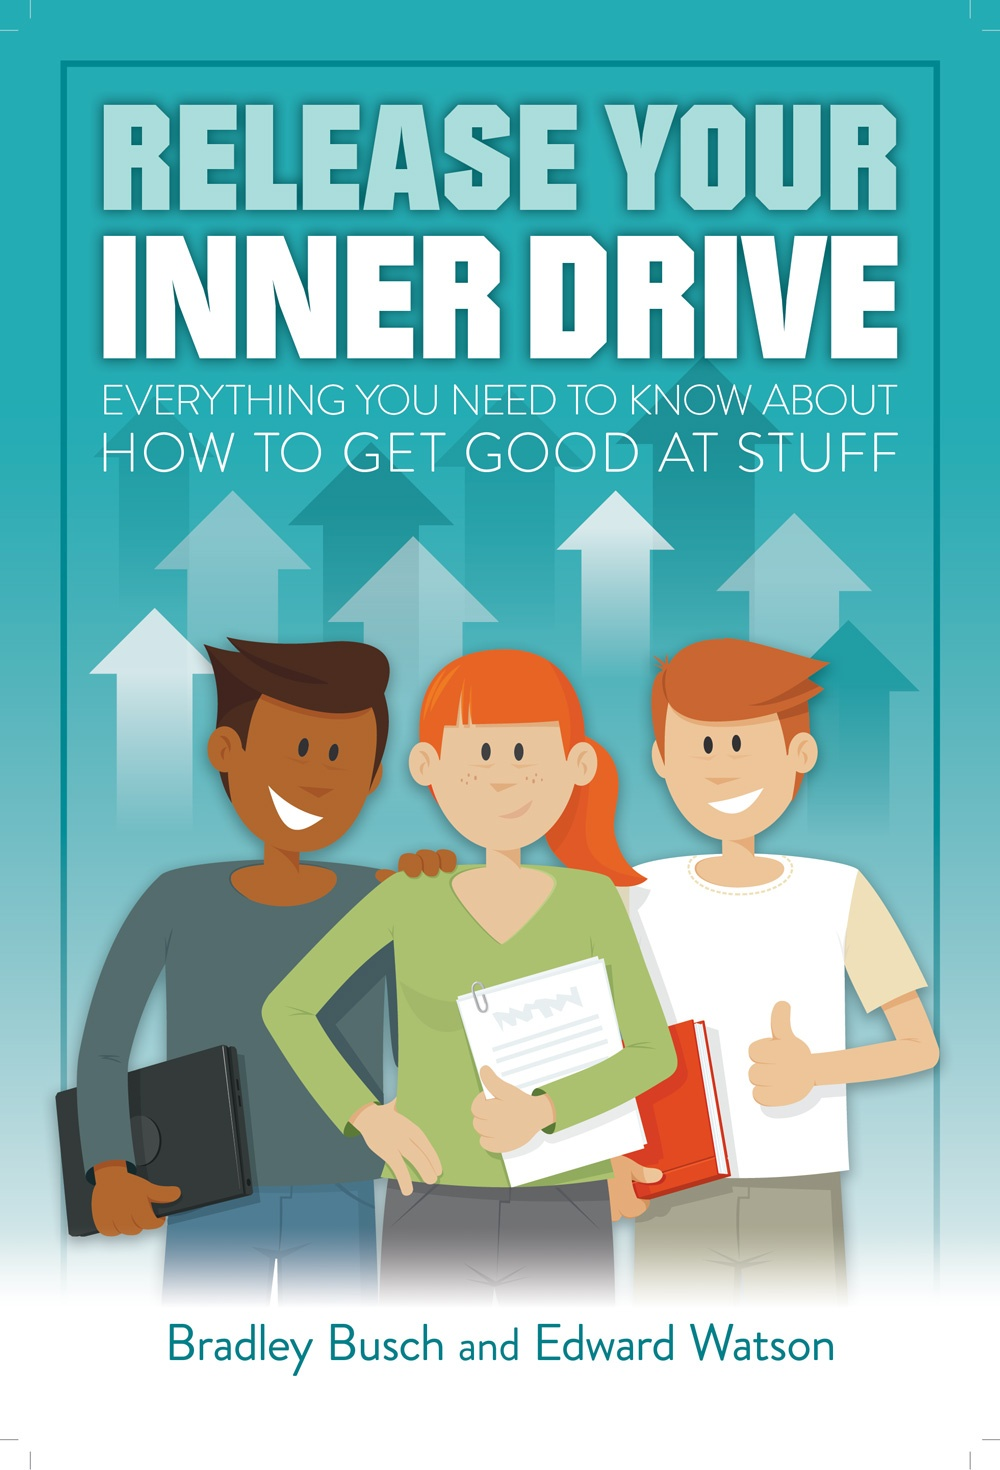 release_your_inner_drive_cover_156x234_withBleed.jpg